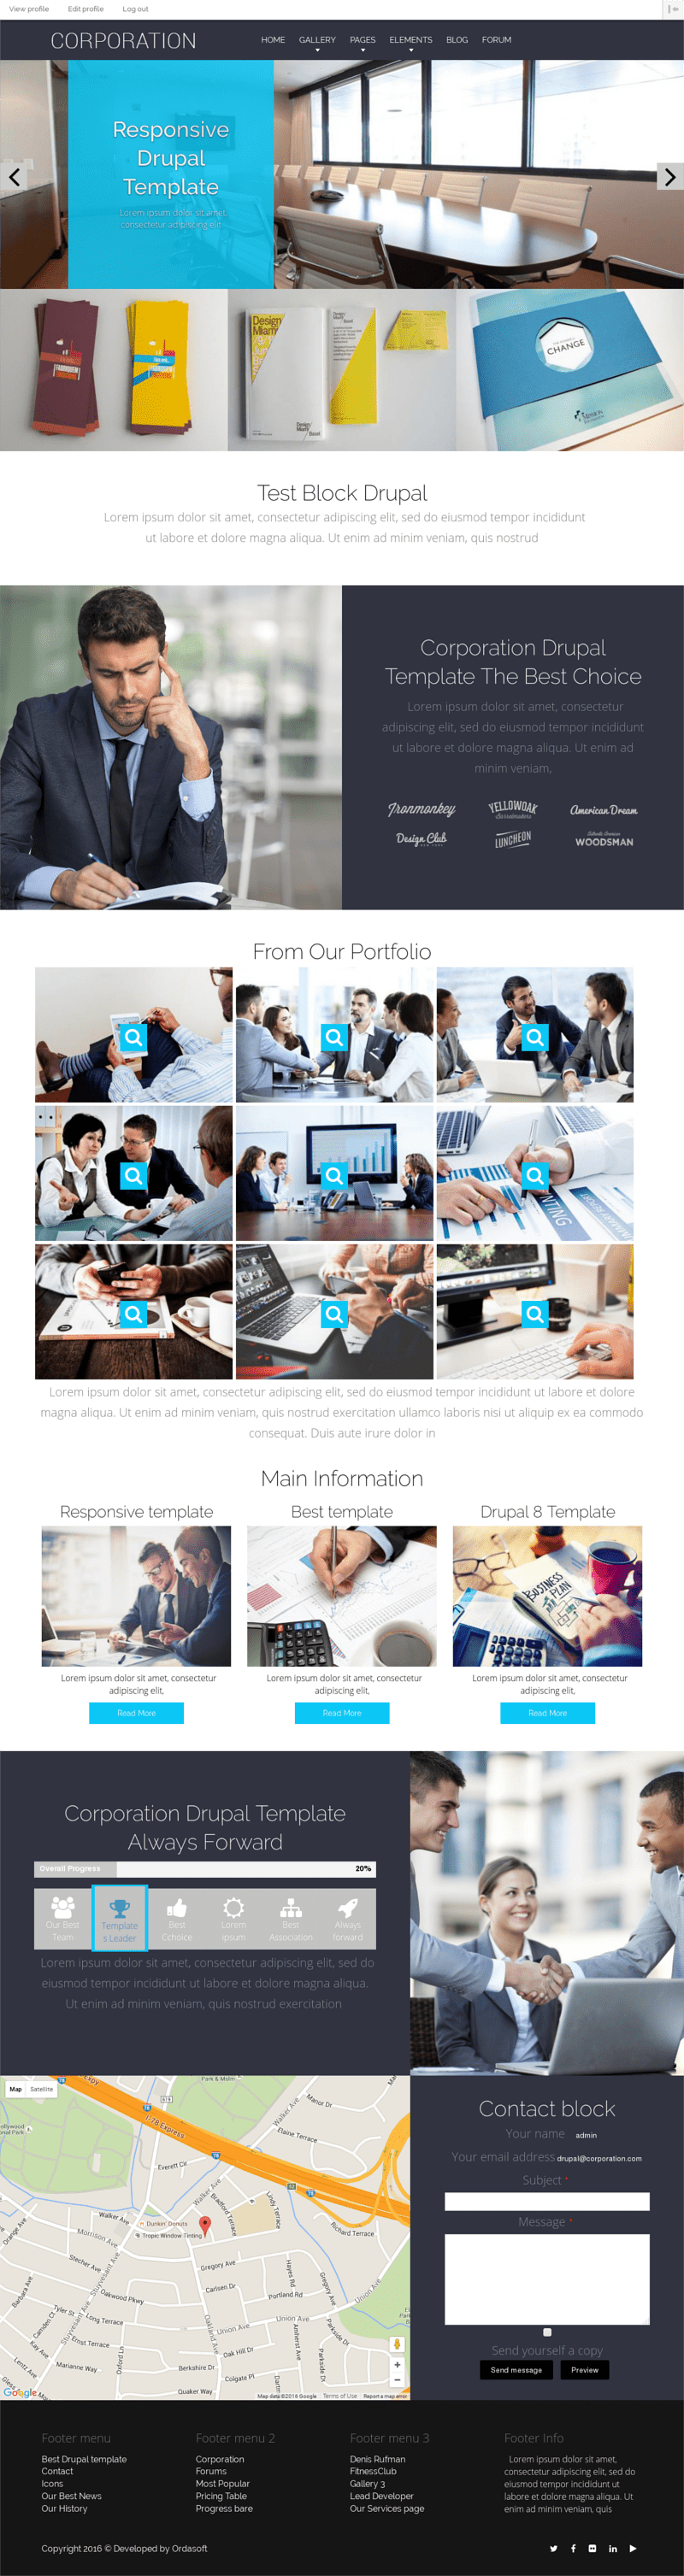 Corporation, Drupal Business Theme